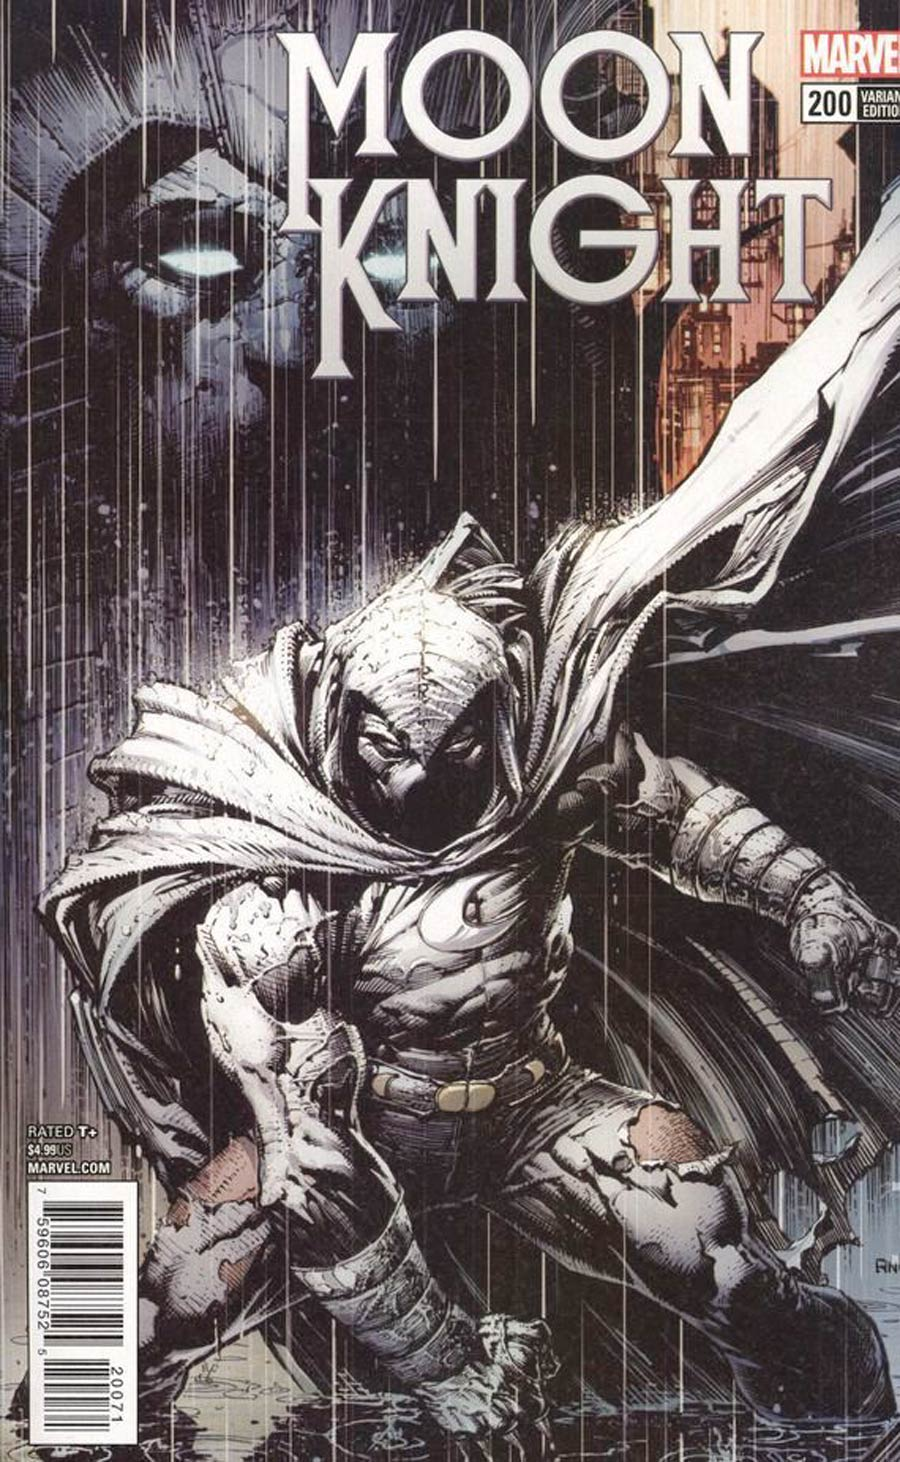 Moon Knight Vol 8 #200 Cover B Variant David Finch Cover